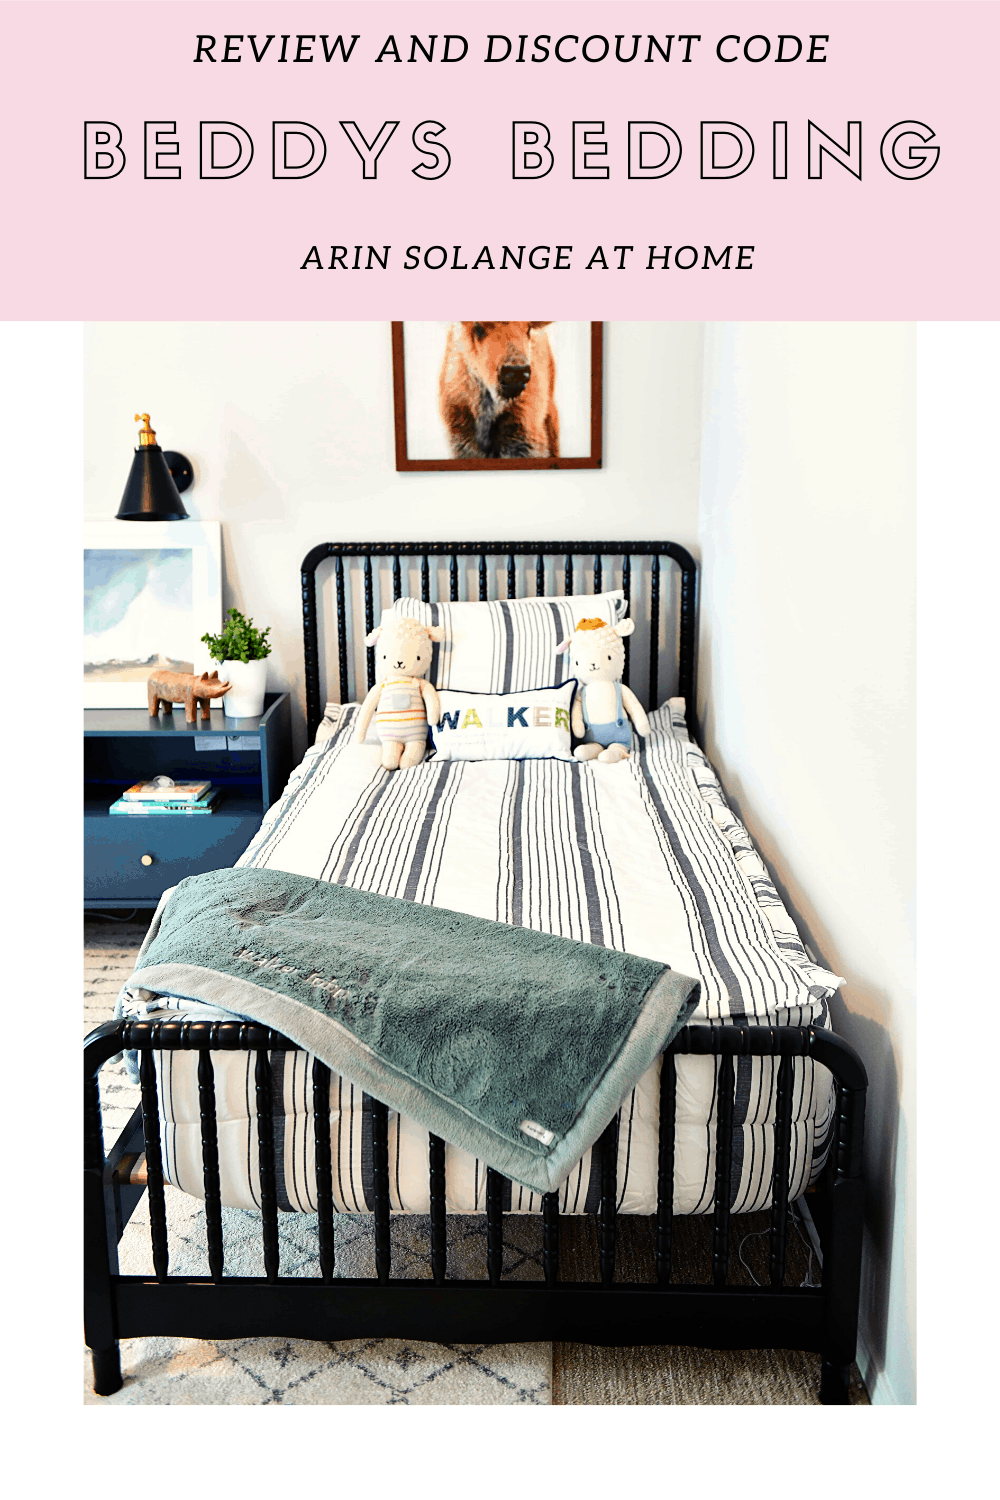 Beddys bedding review and discount code